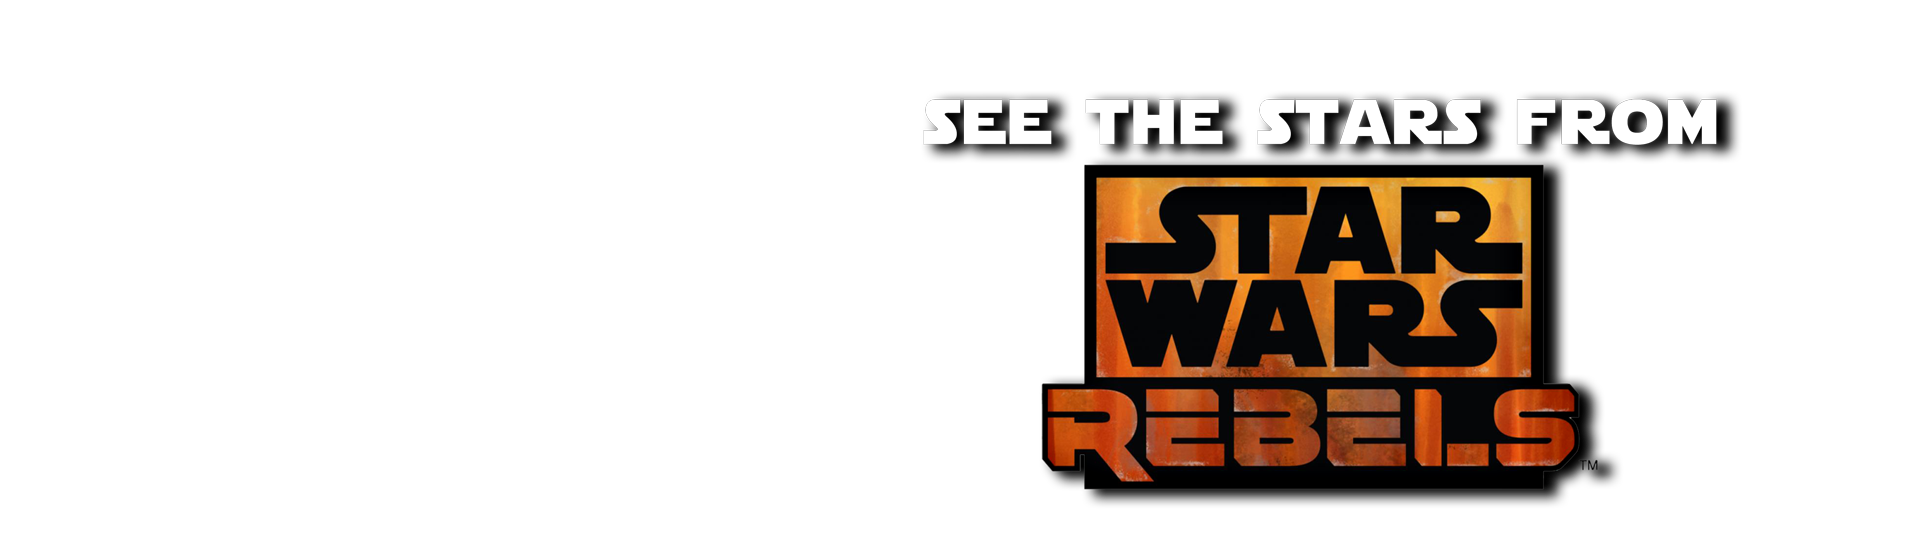 See the Stars from Star Wars Rebels